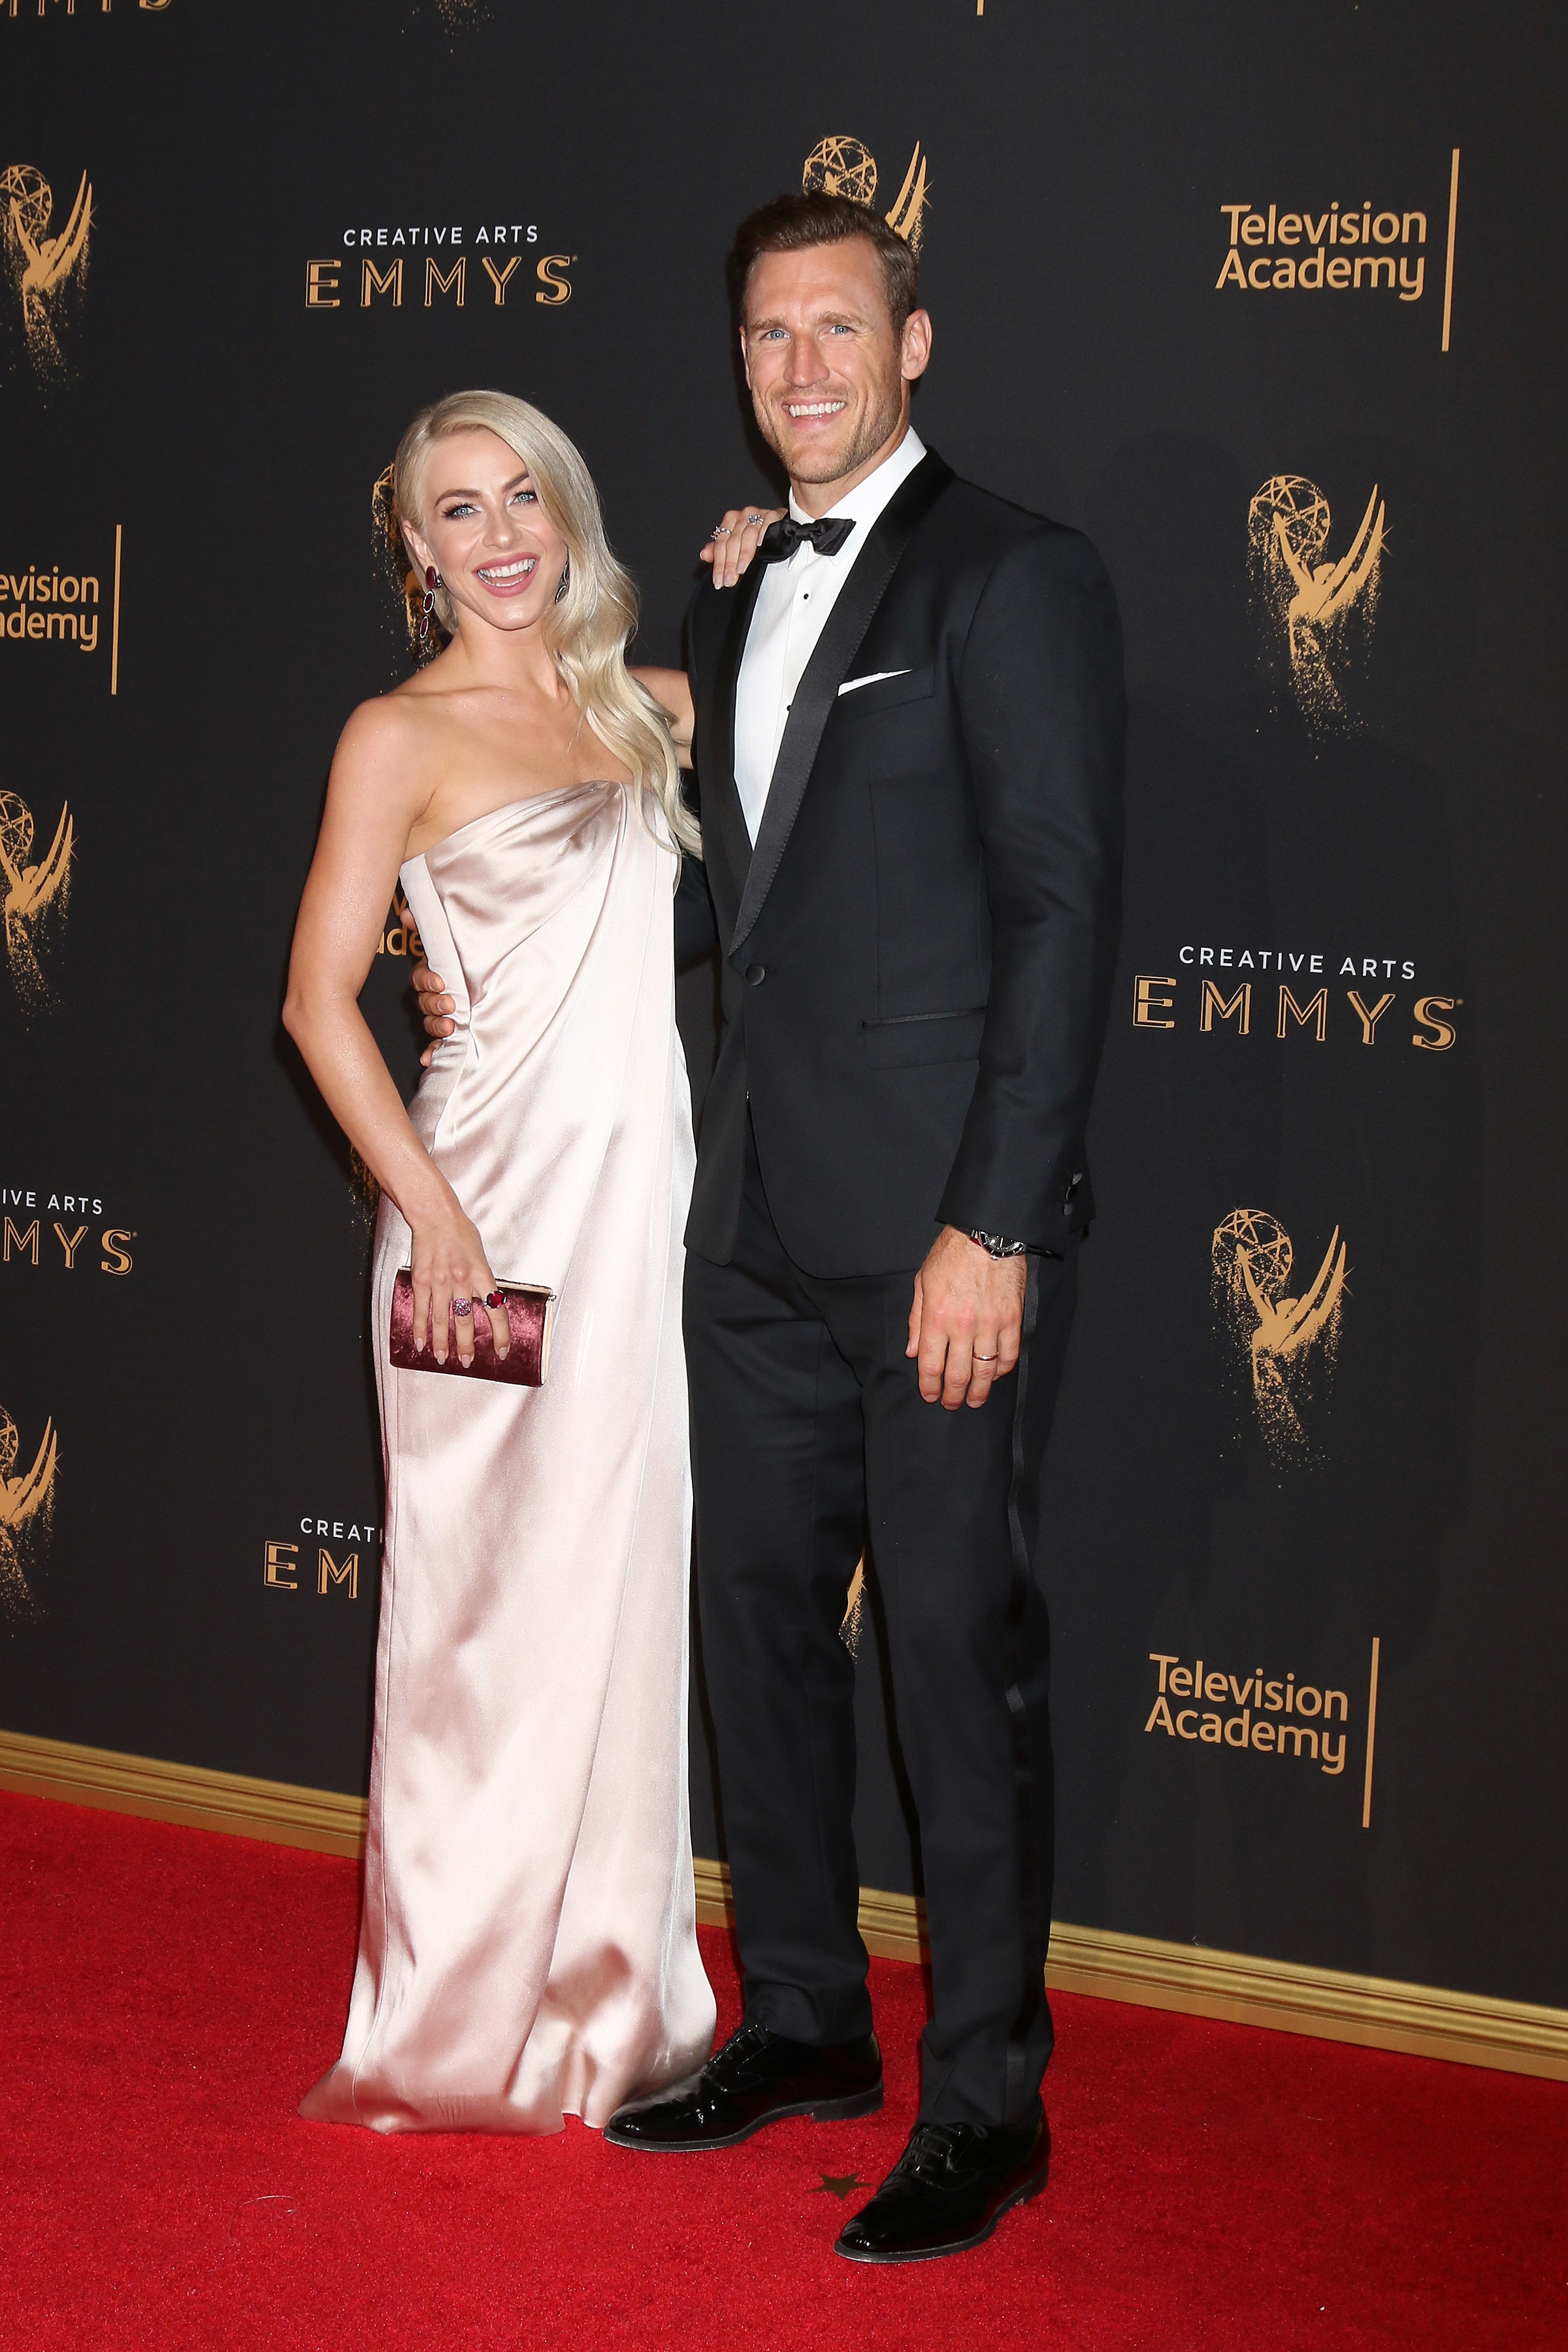 Julianne Hough is 'happy and incredible' since marrying Brooks Laich